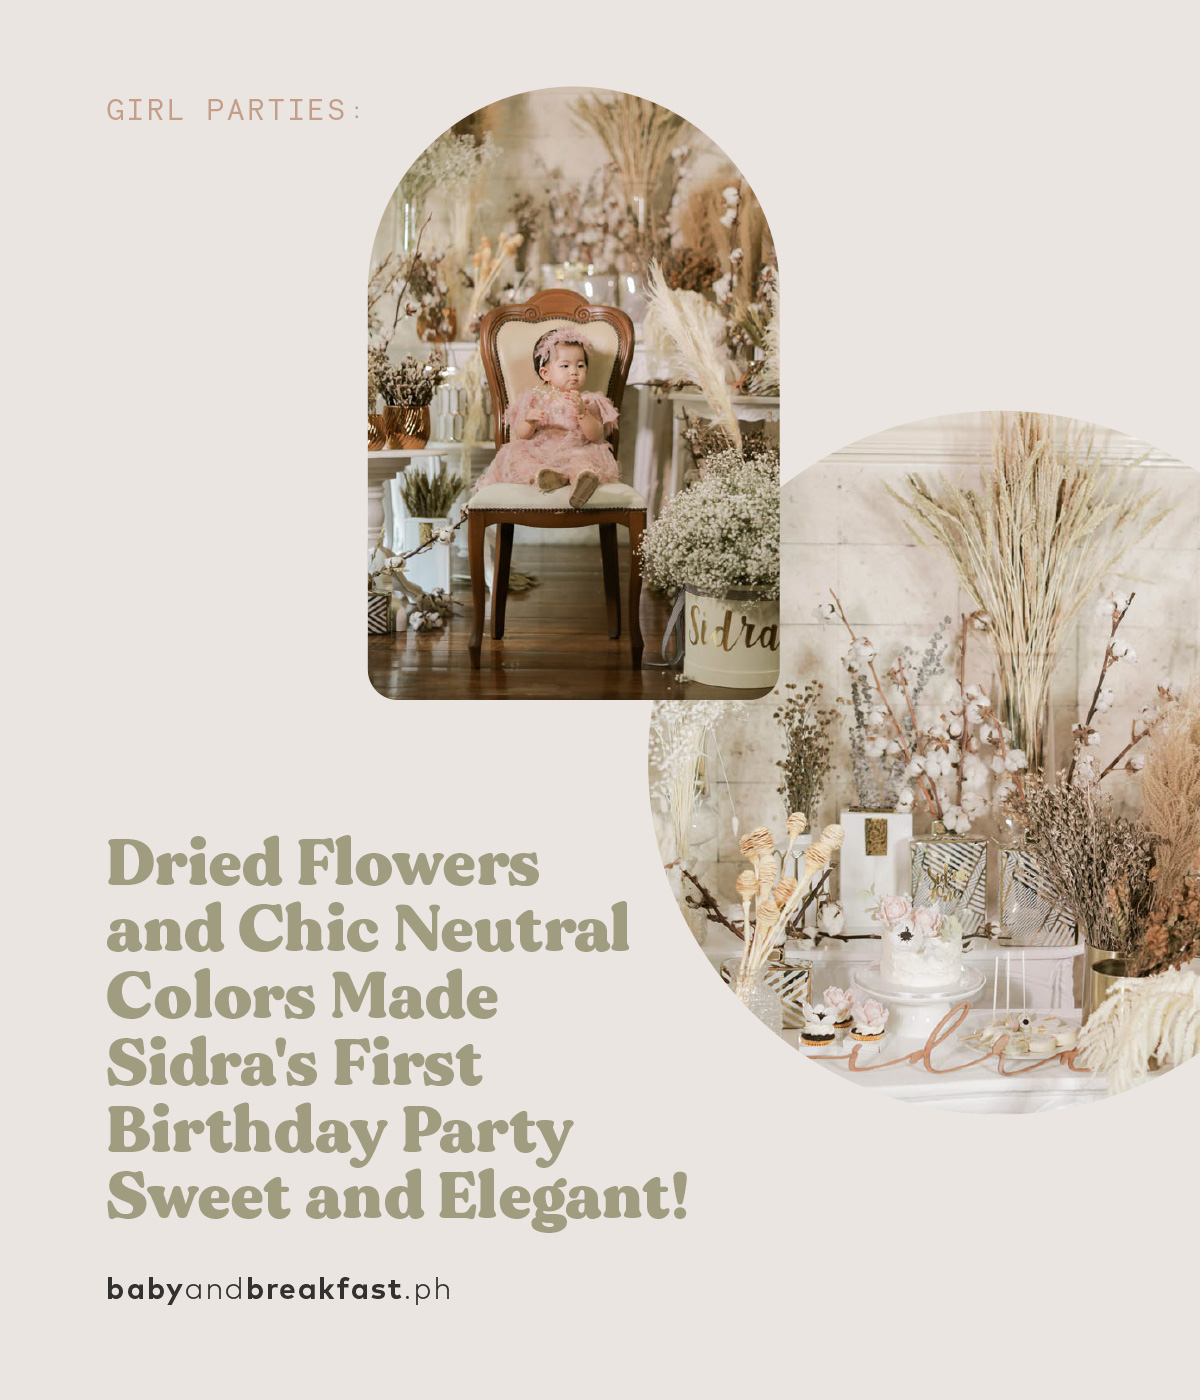 Dried Flowers and Chic Neutral Colors Made Sidra's First Birthday Party Sweet and Elegant!